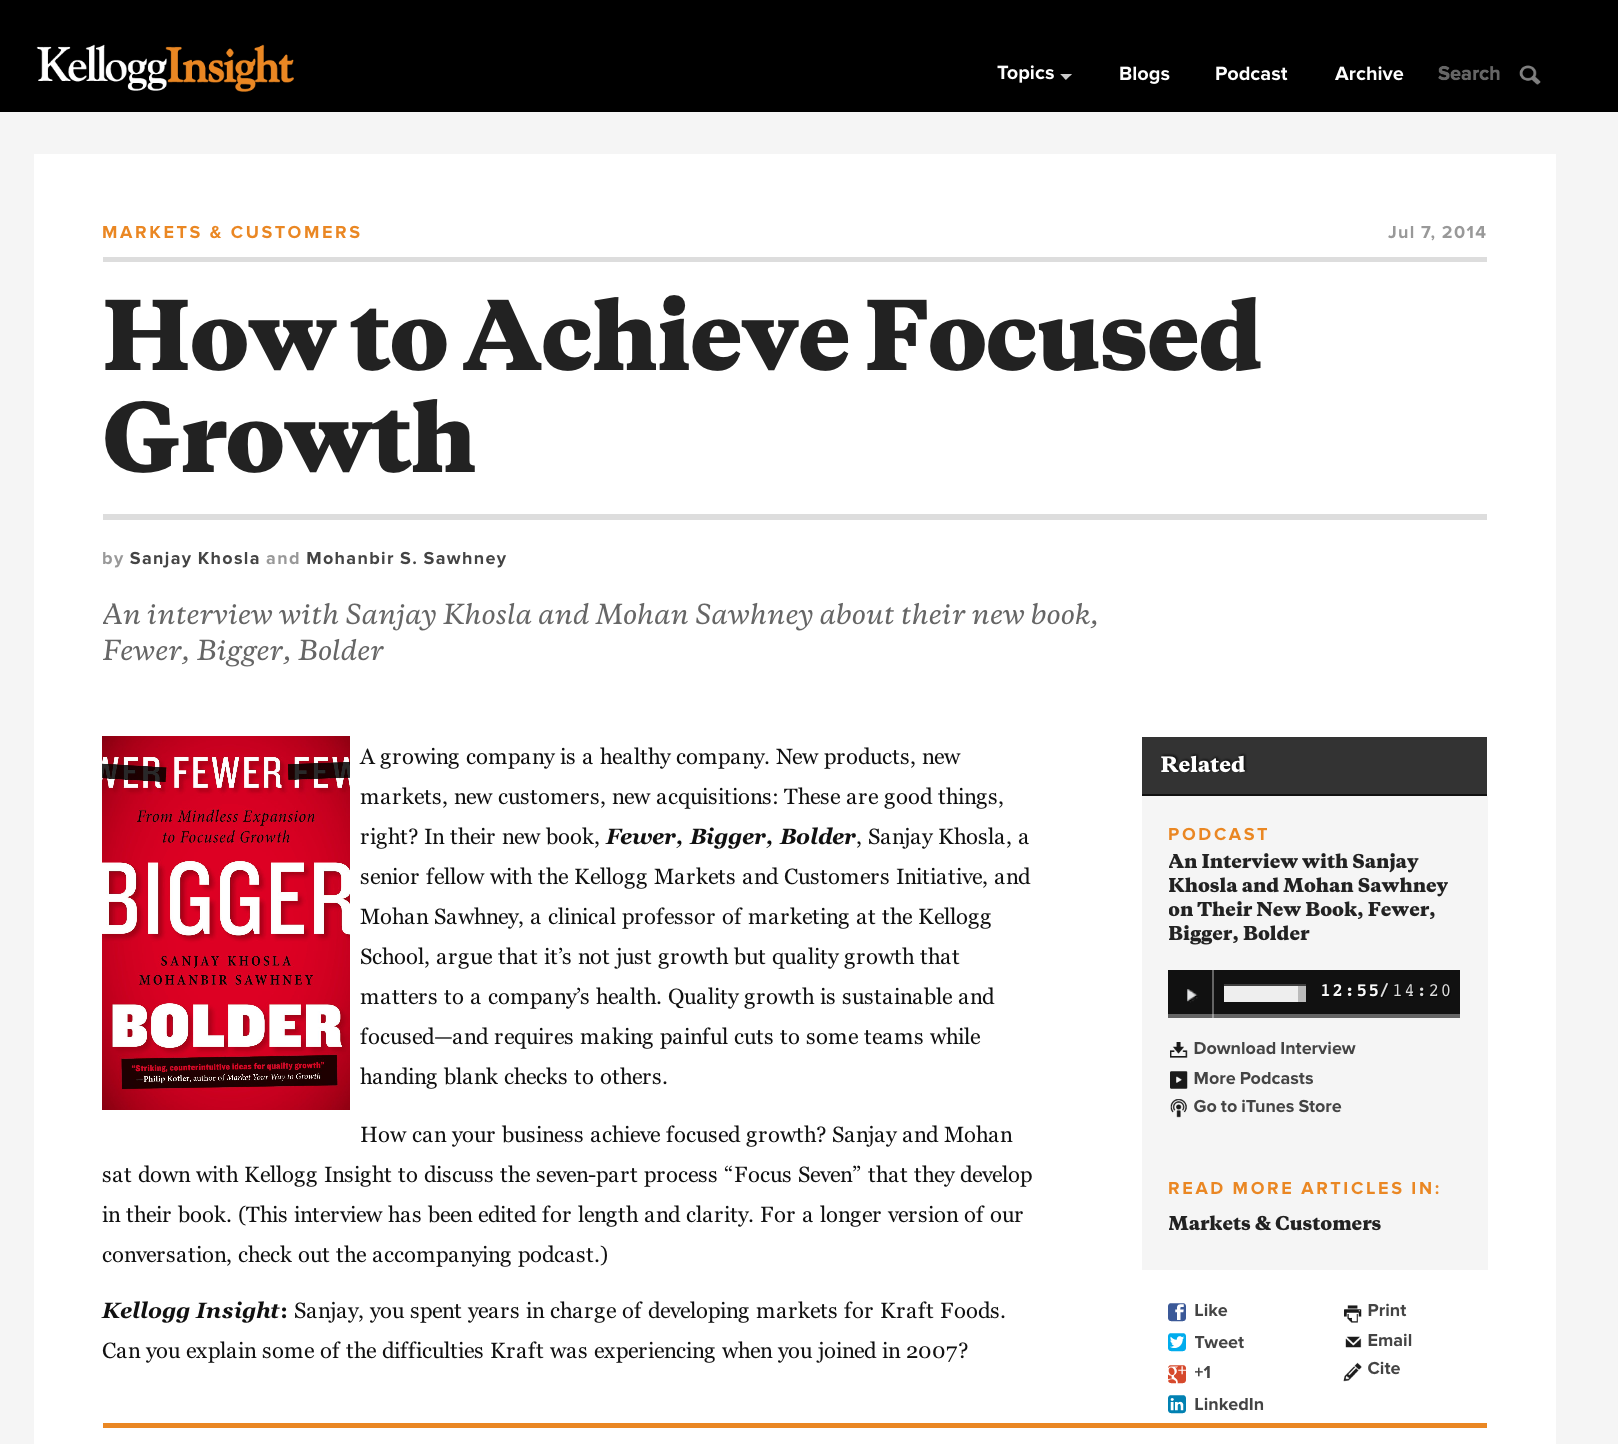 How to Achieve Focused Growth